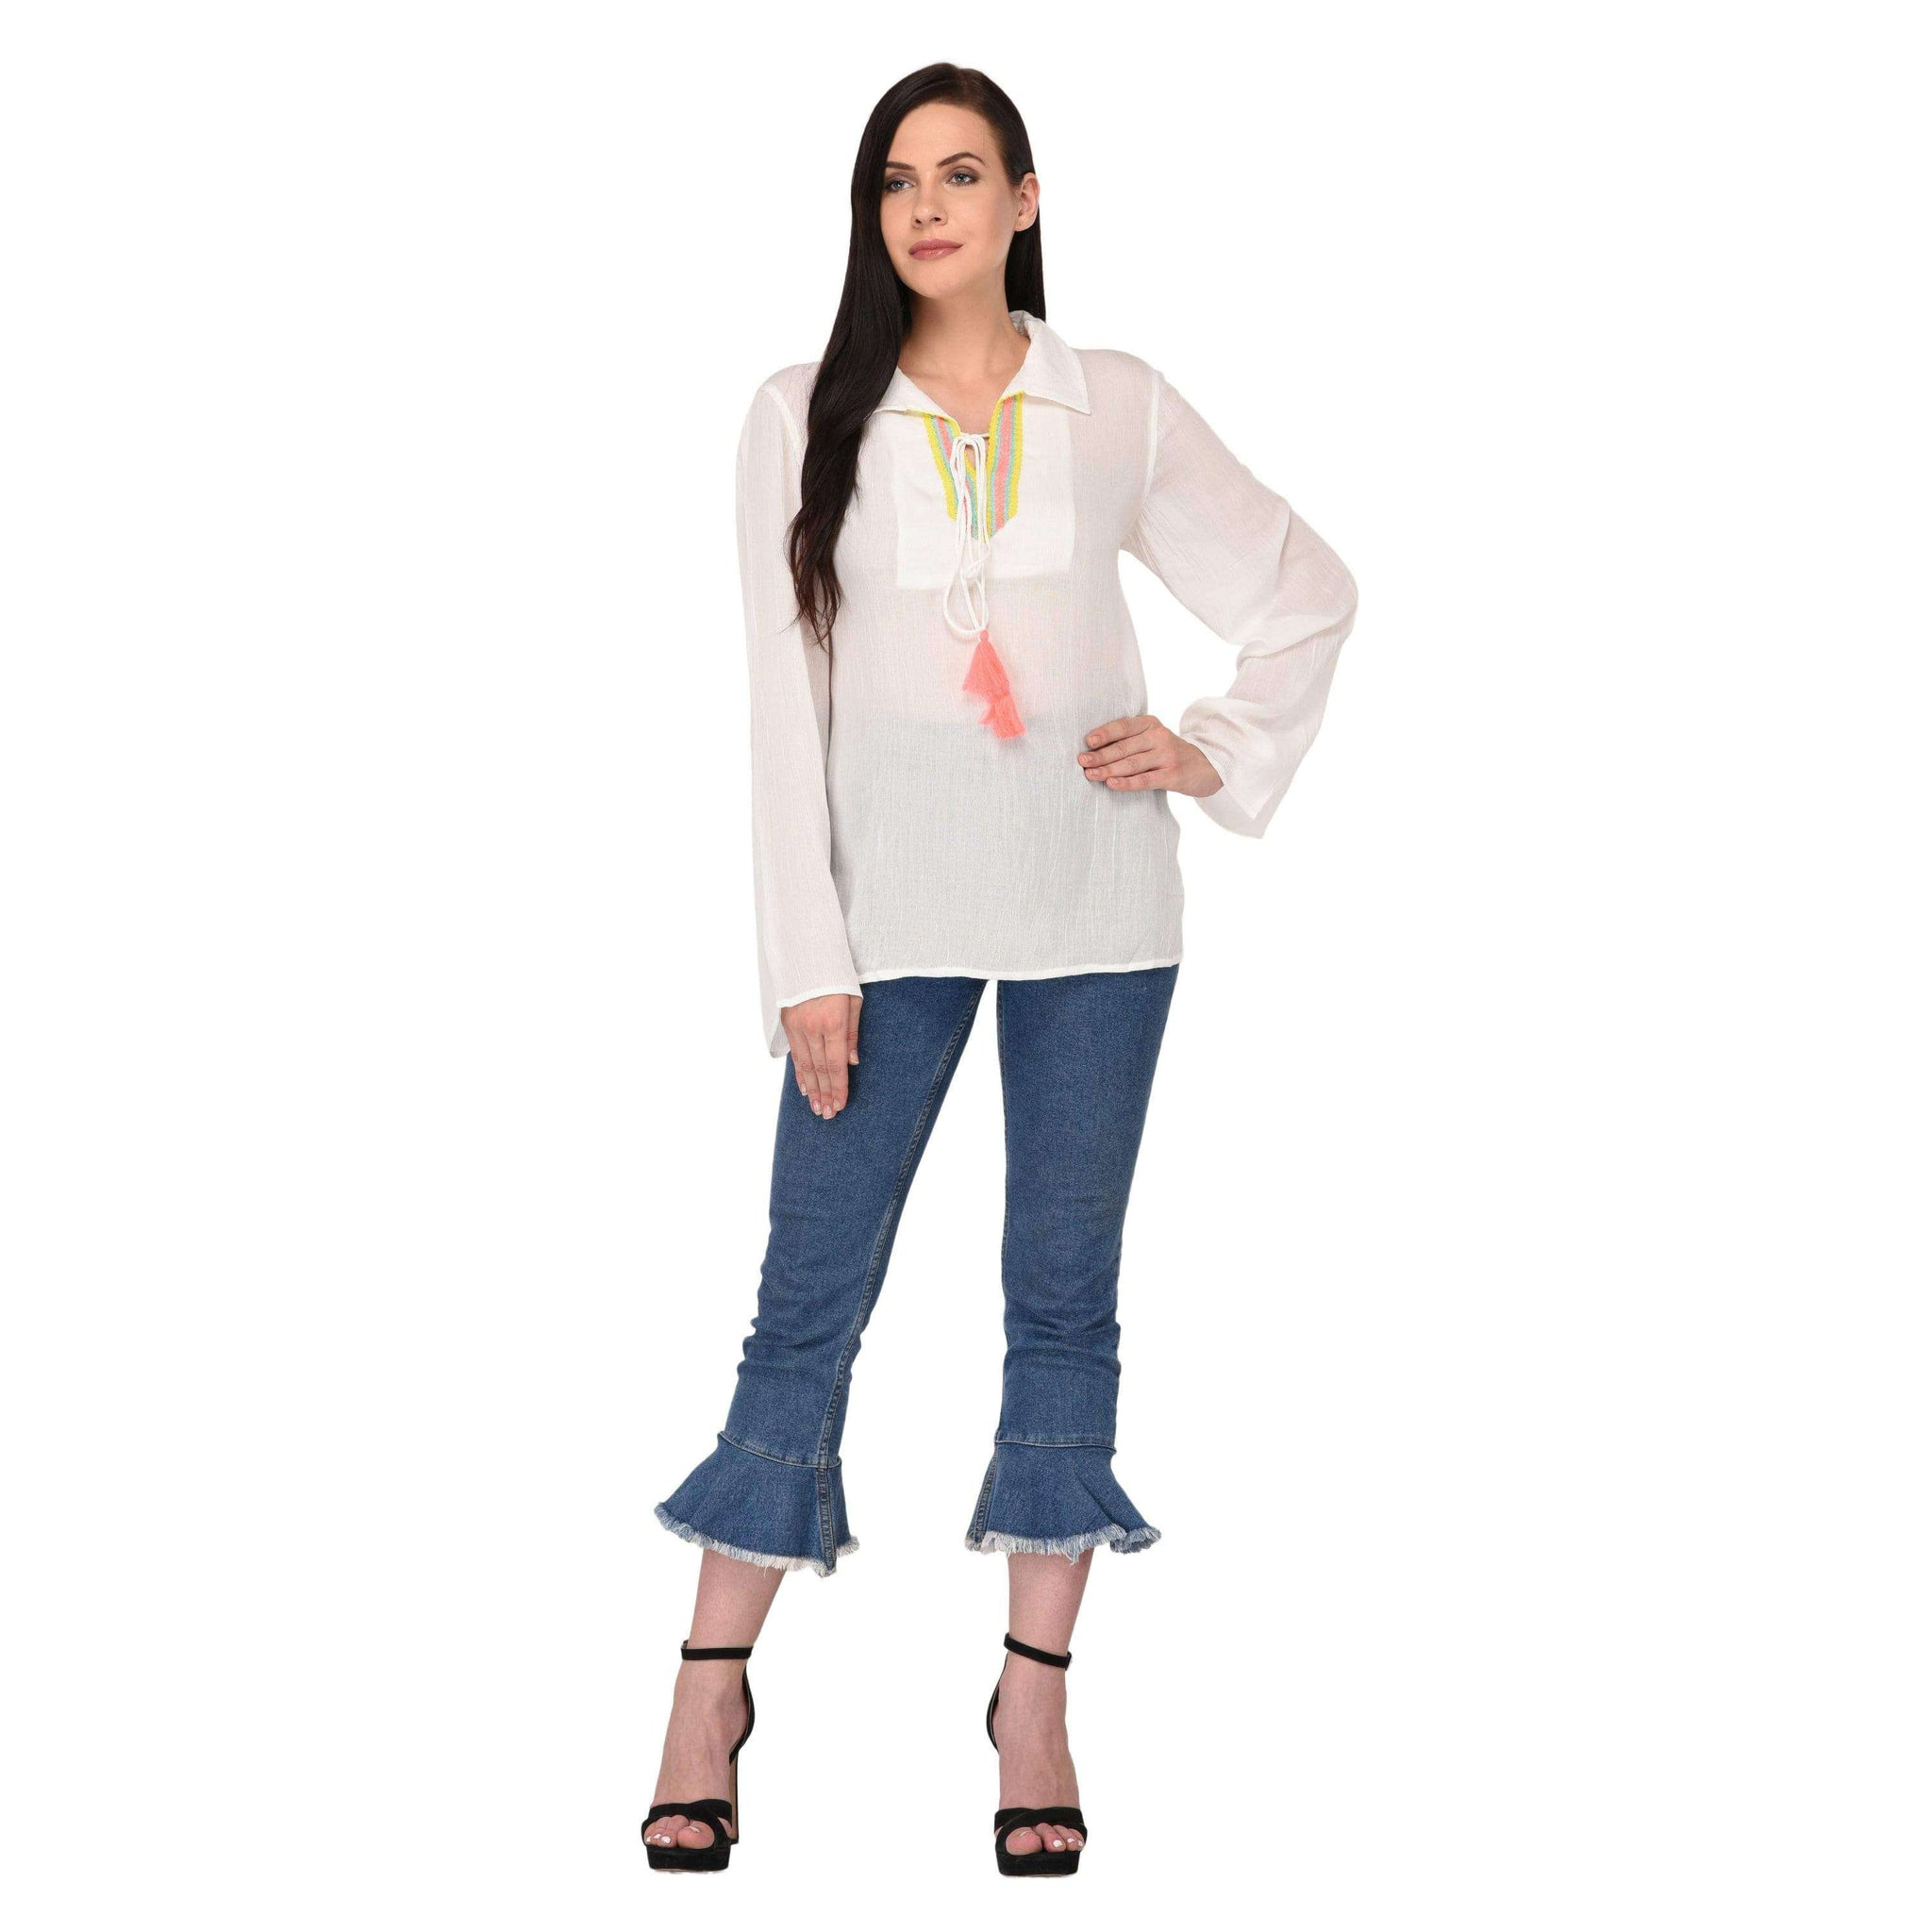 Tie-up Lace Top White - NIXX Clothing